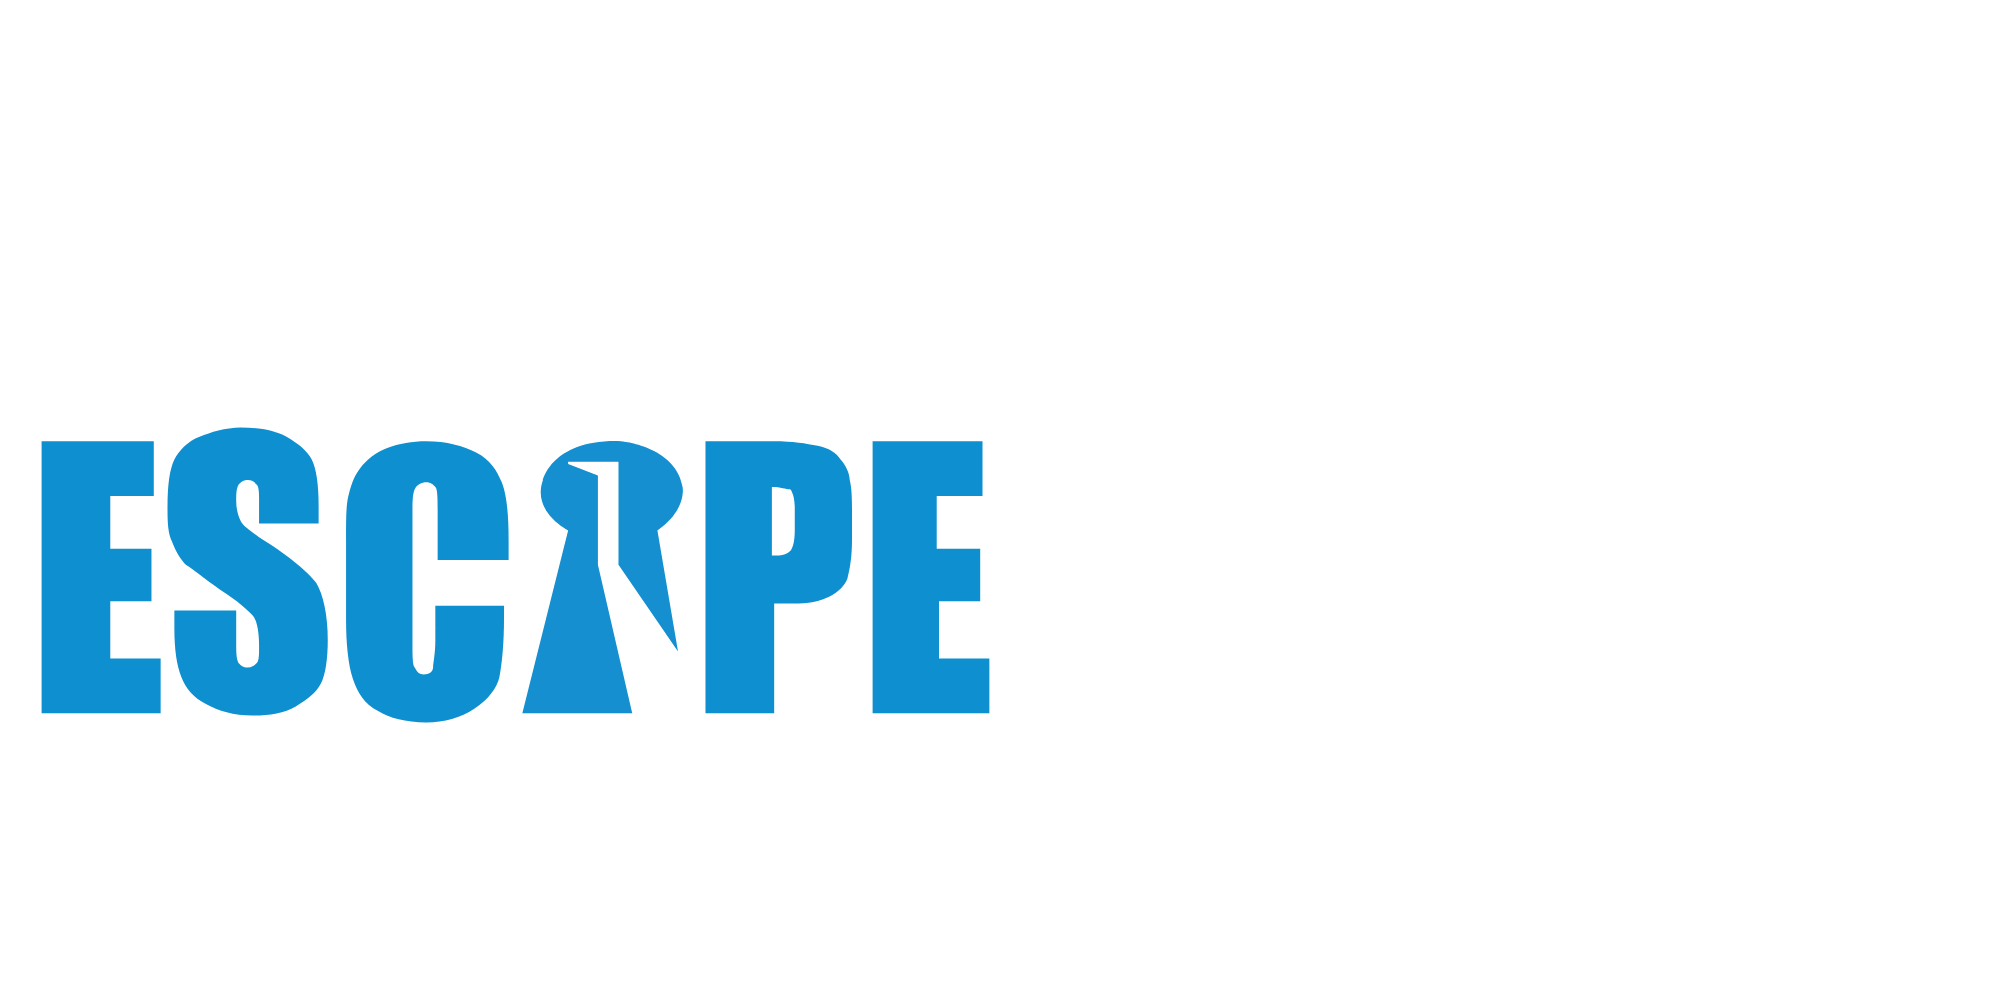 Maldon Escape Rooms